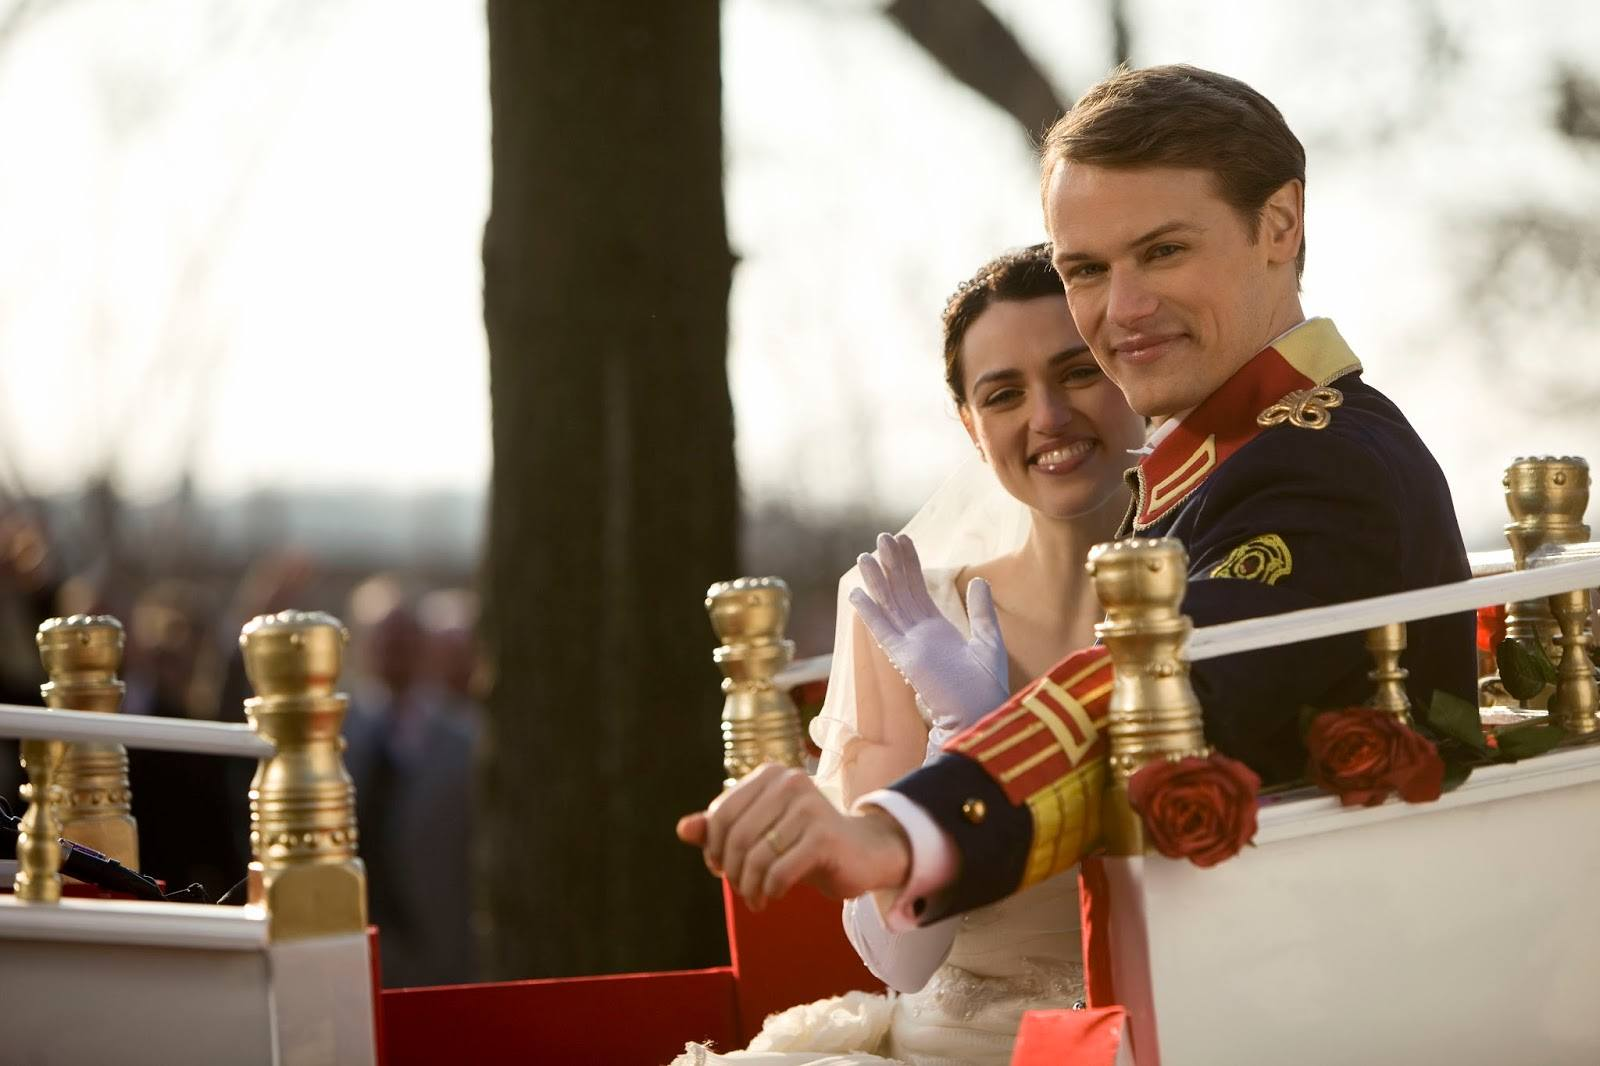 Katie McGrath as Jules Daly and Sam Heughan as Prince Ashton in A Princess for Christmas